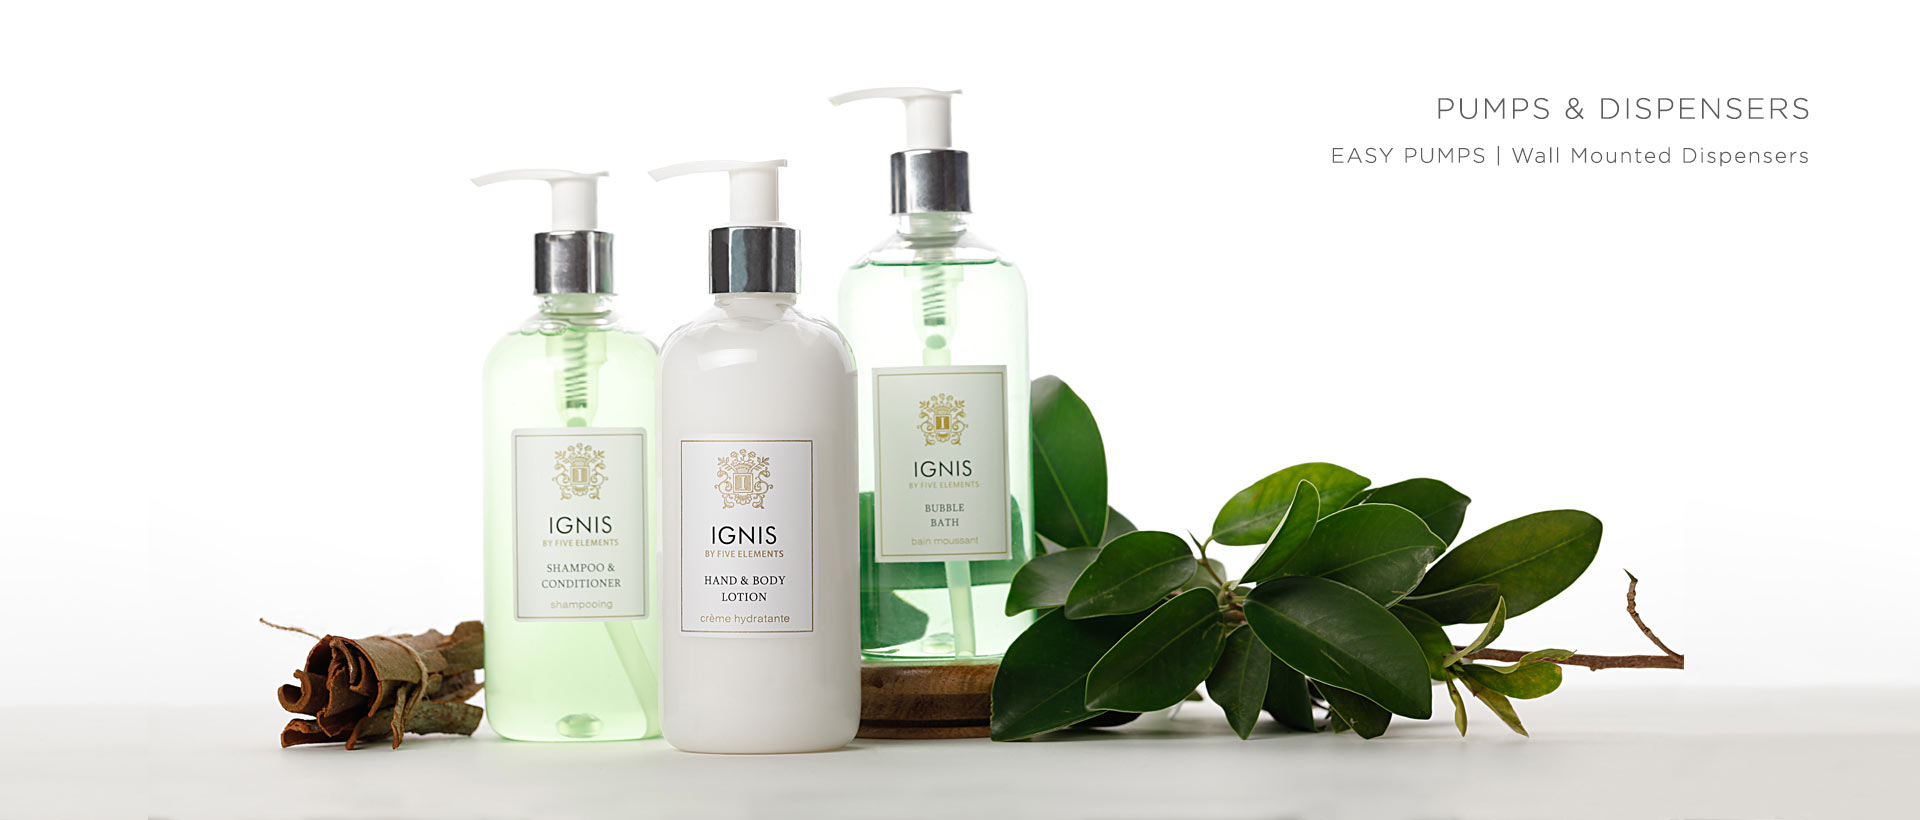 Hotel Toiletries India, Pumps and dispensers for hotels, Kimirica Hunter International, Luxury Hotel Amenities.